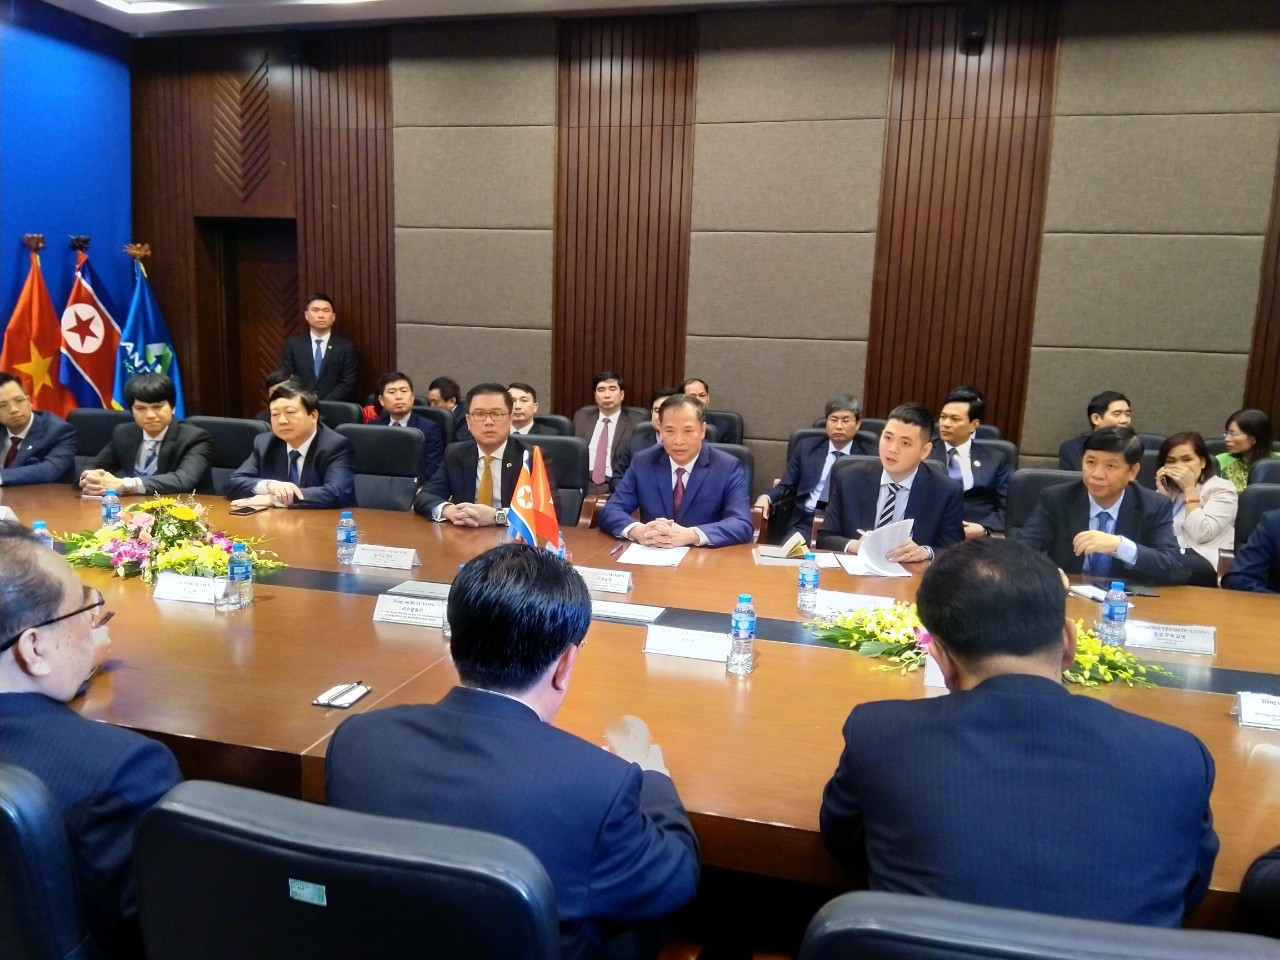 High-level delegation of DPRK visiting An Phat Plastic factory